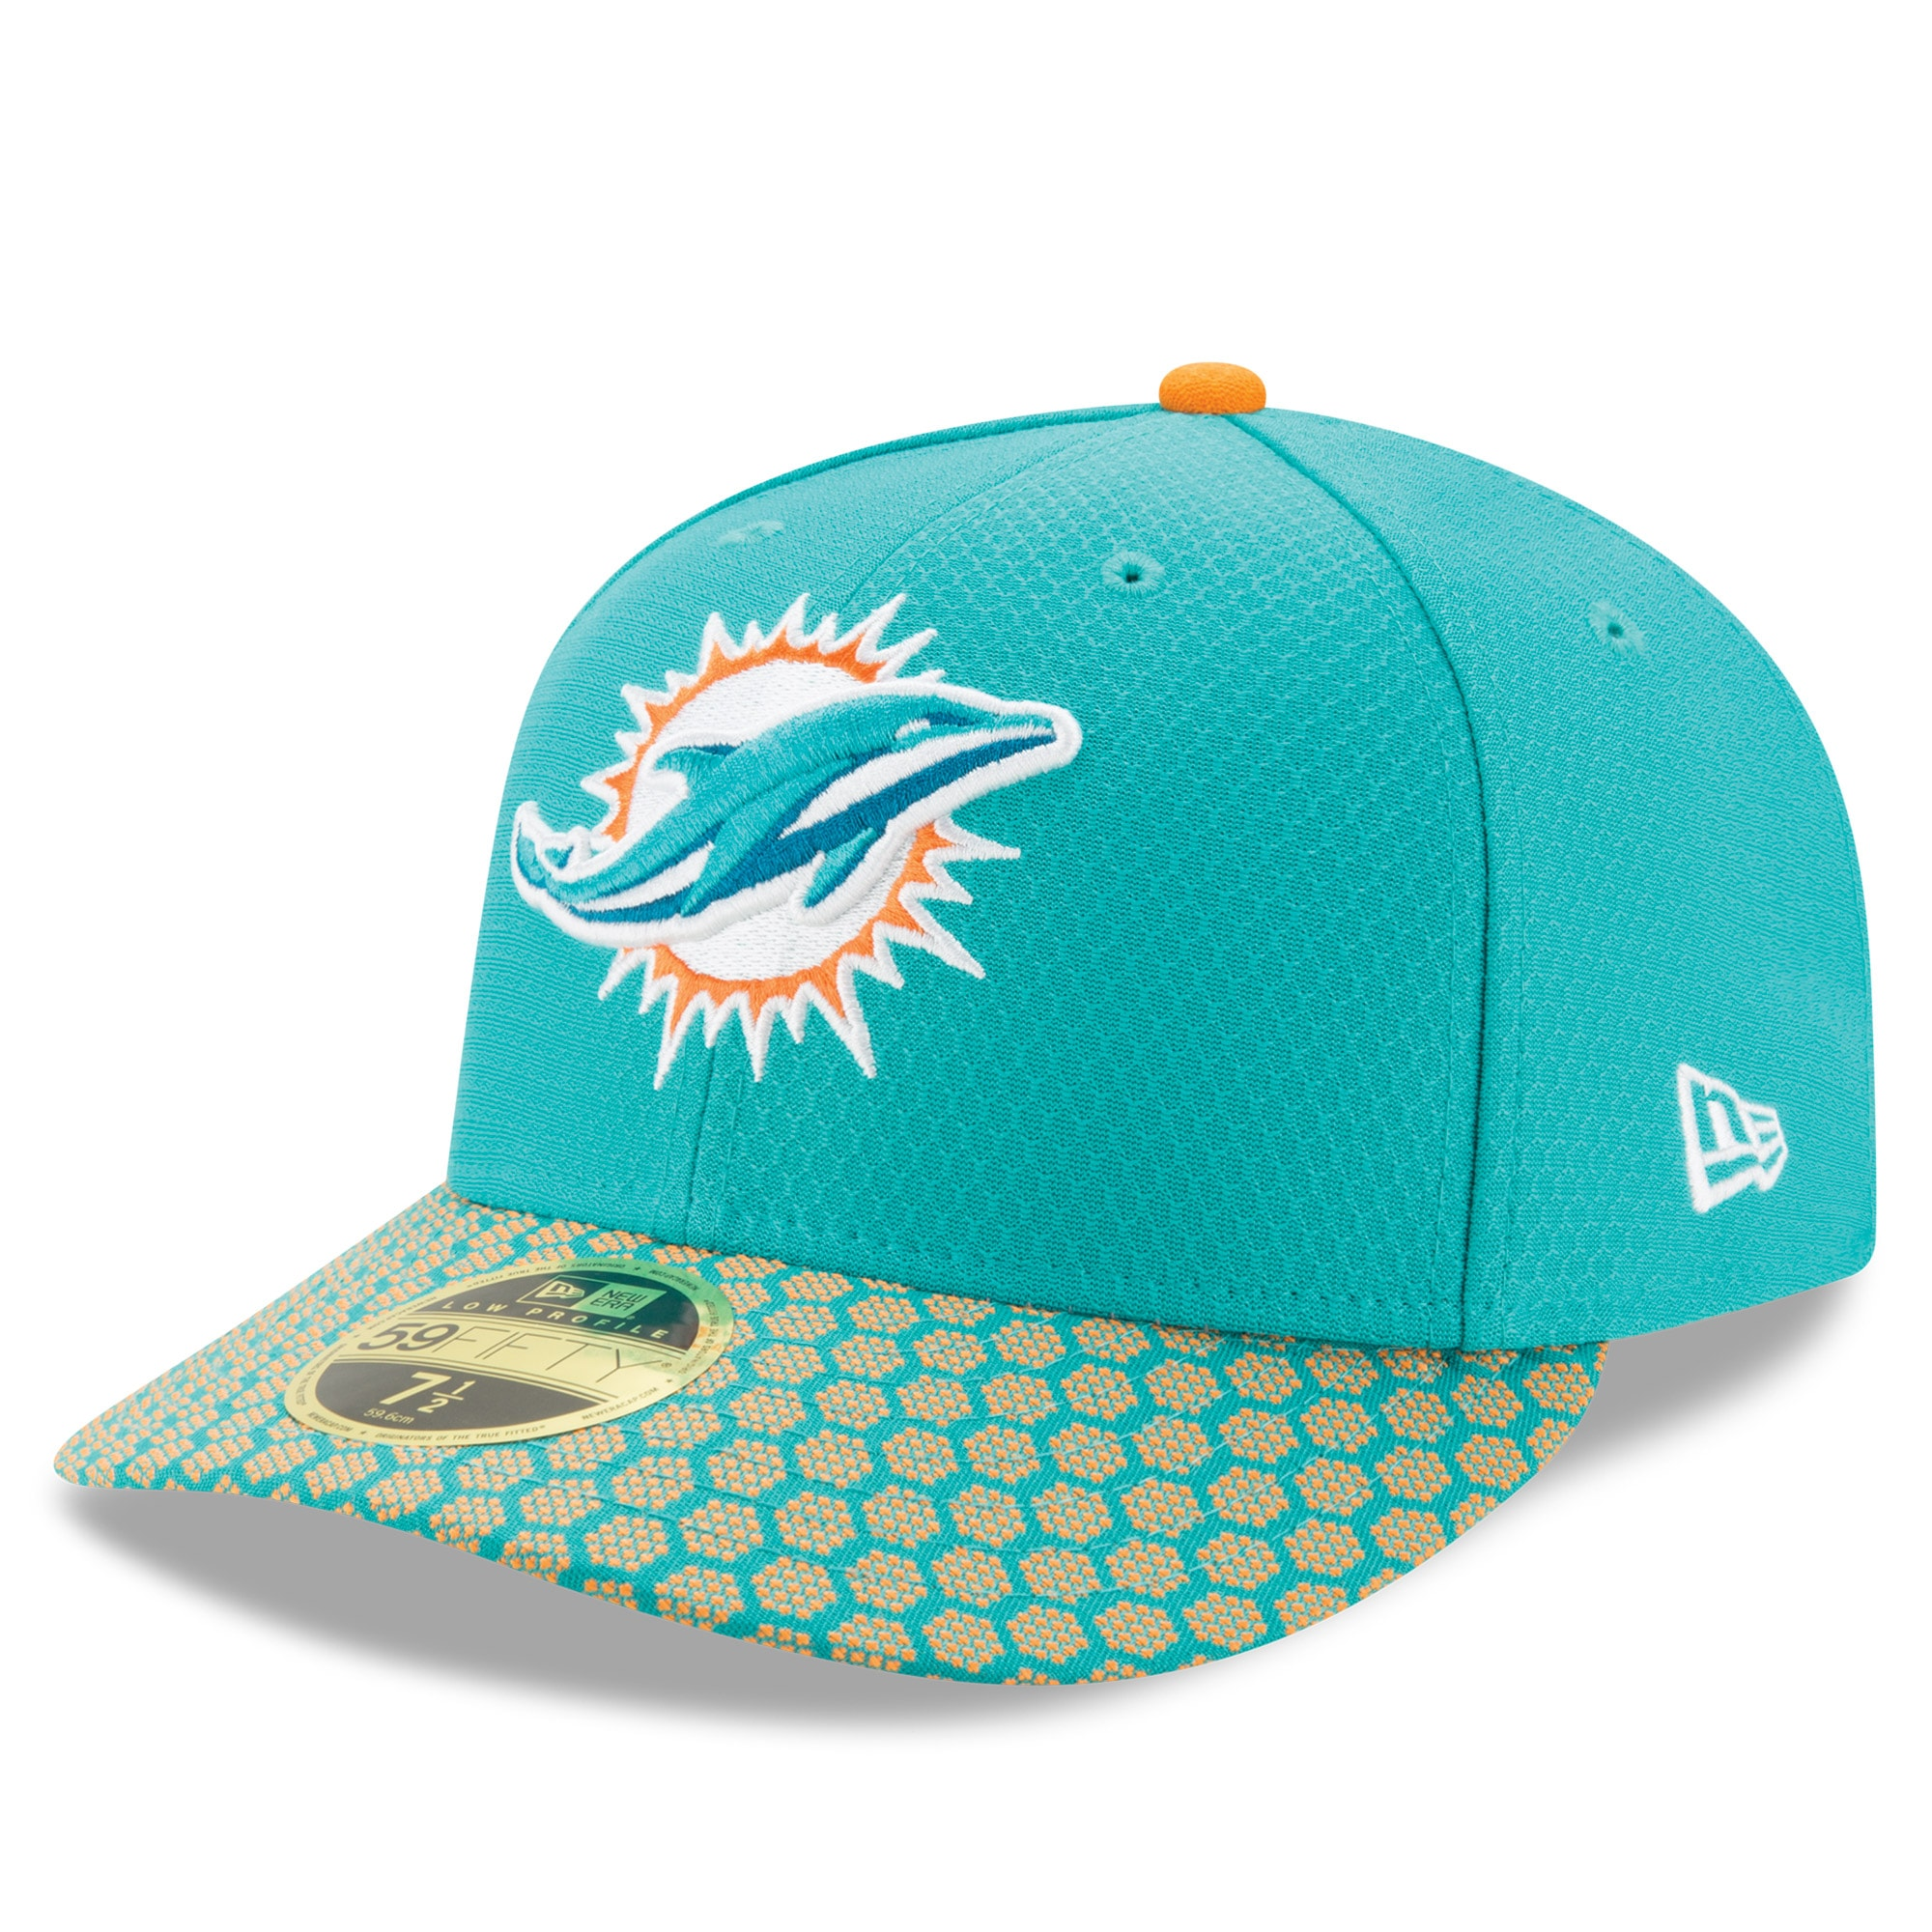 Miami Dolphins New Era 2017 Sideline Official Low Profile 59FIFTY Fitted Hat - Aqua